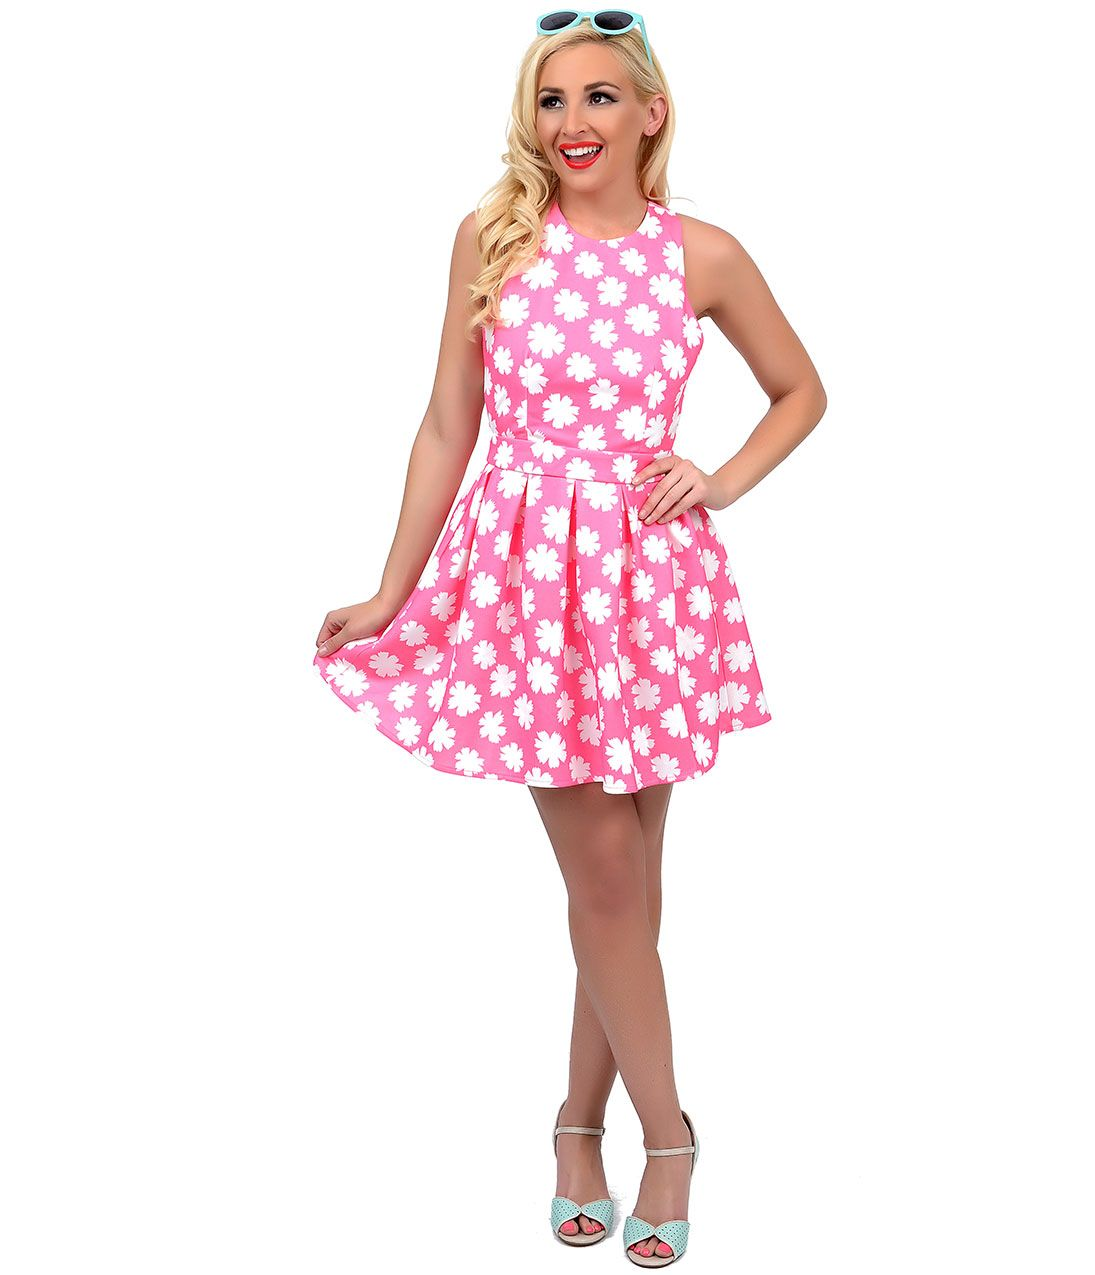 Pink cut out dress  In this picture the girl is wearing a pink floral print dress with